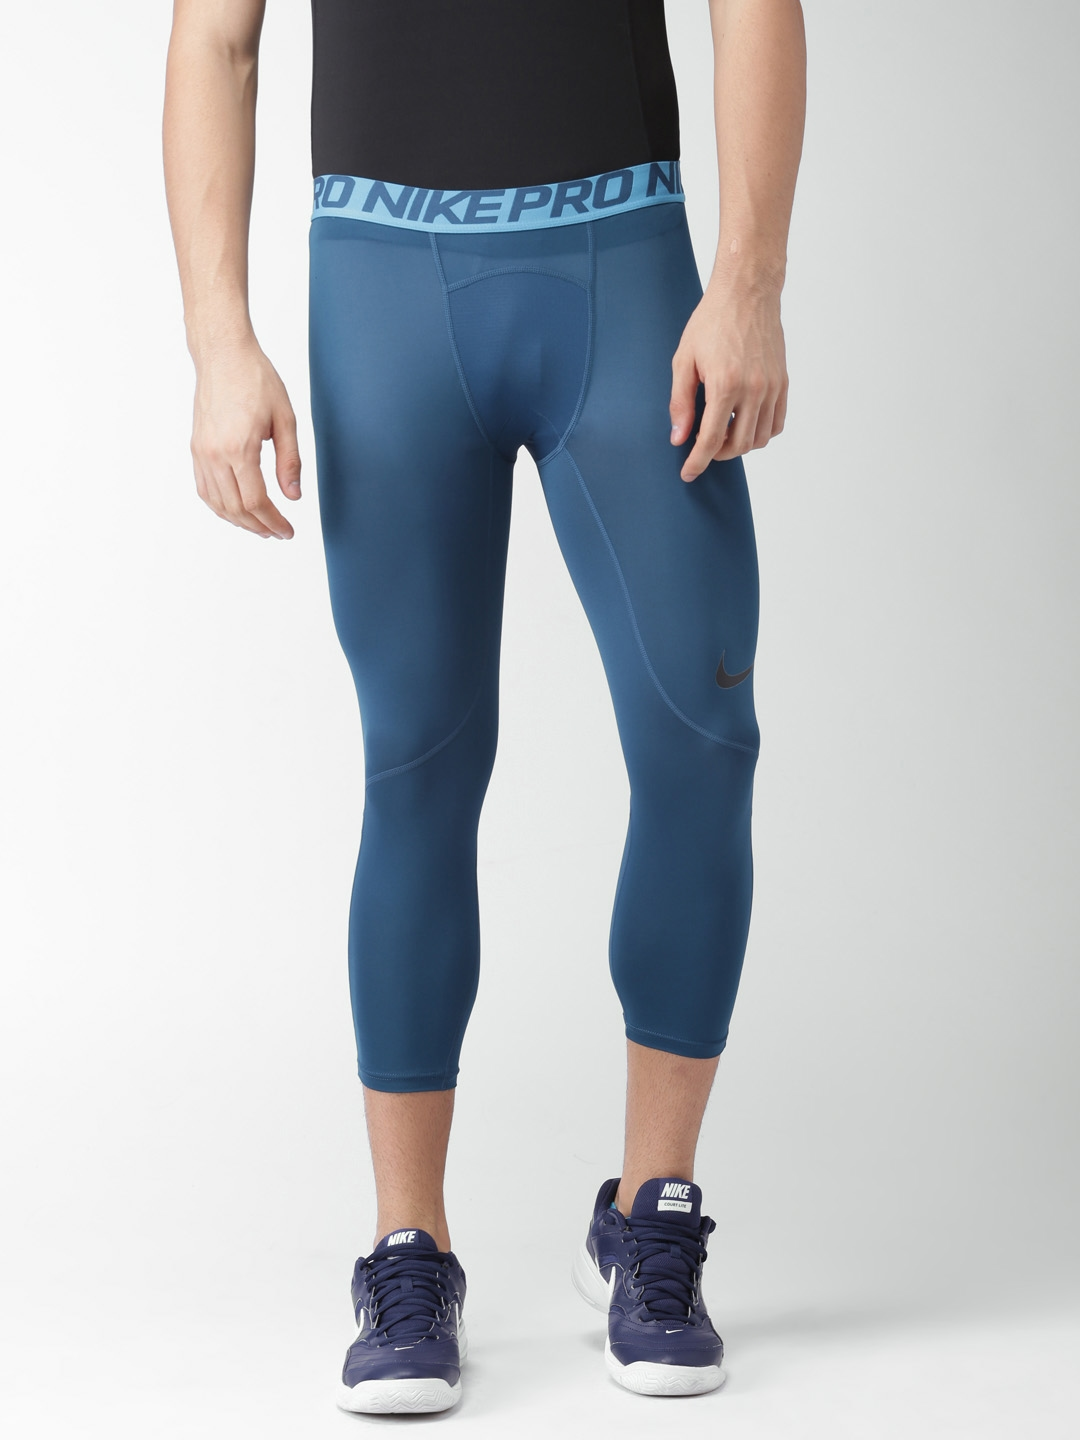 c5f2801663472 Buy Nike Blue Printed Compression Pro Tights - Tights for Men ...